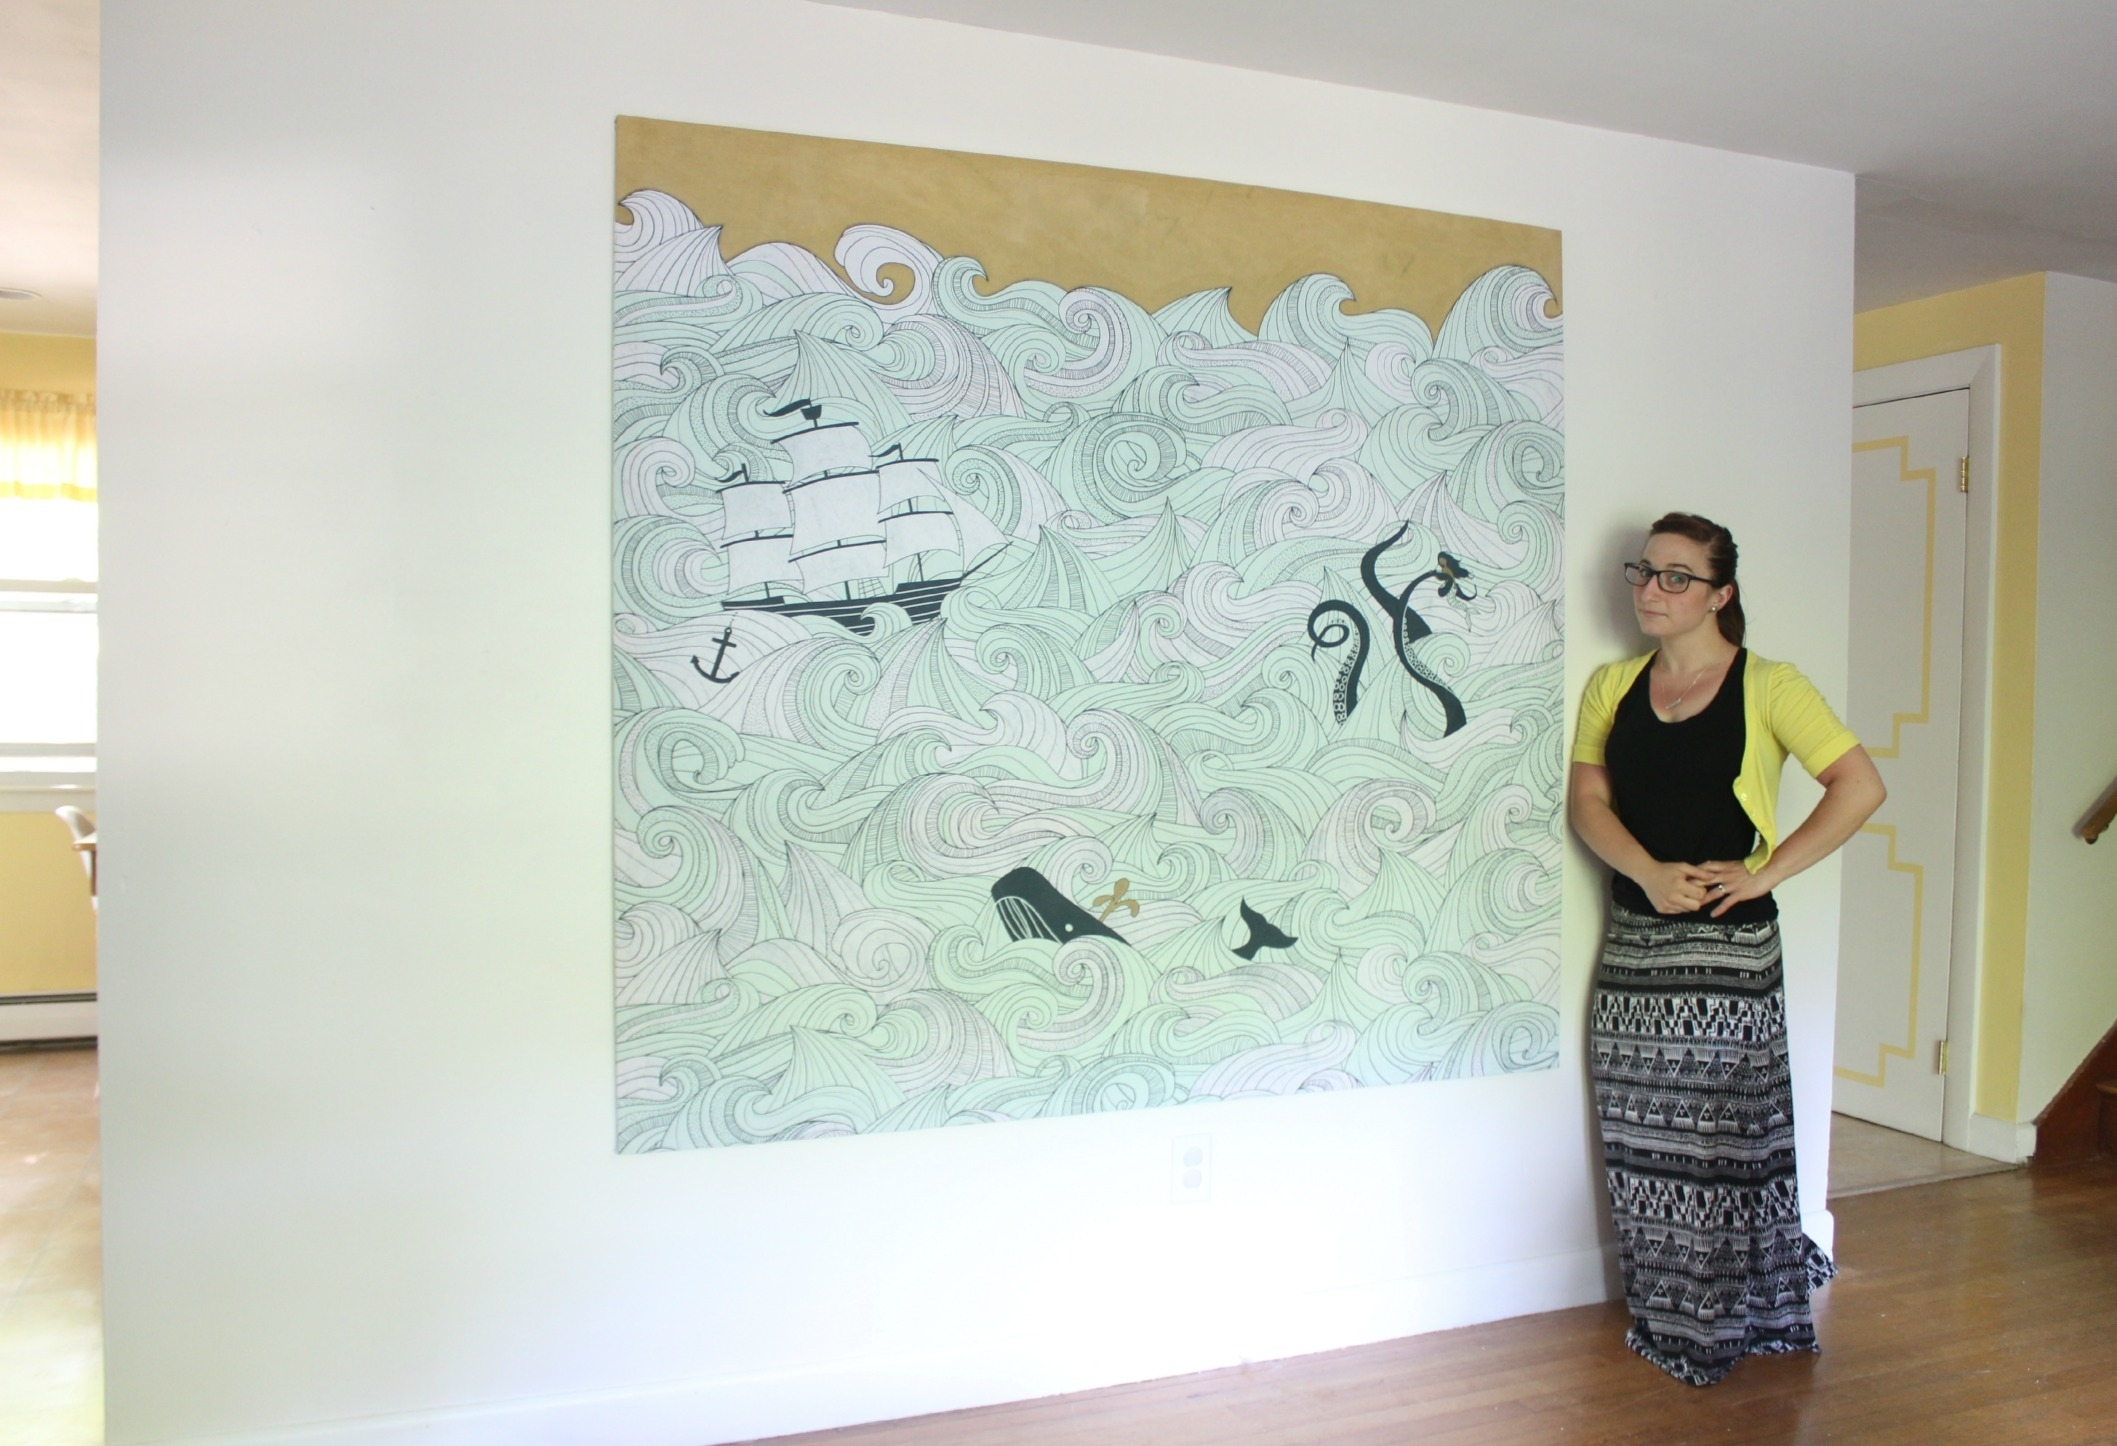 Diy Stretched Fabric Canvas (with A Shower Curtain!) | Stephanie With Recent Shower Curtain Wall Art (Gallery 3 of 20)